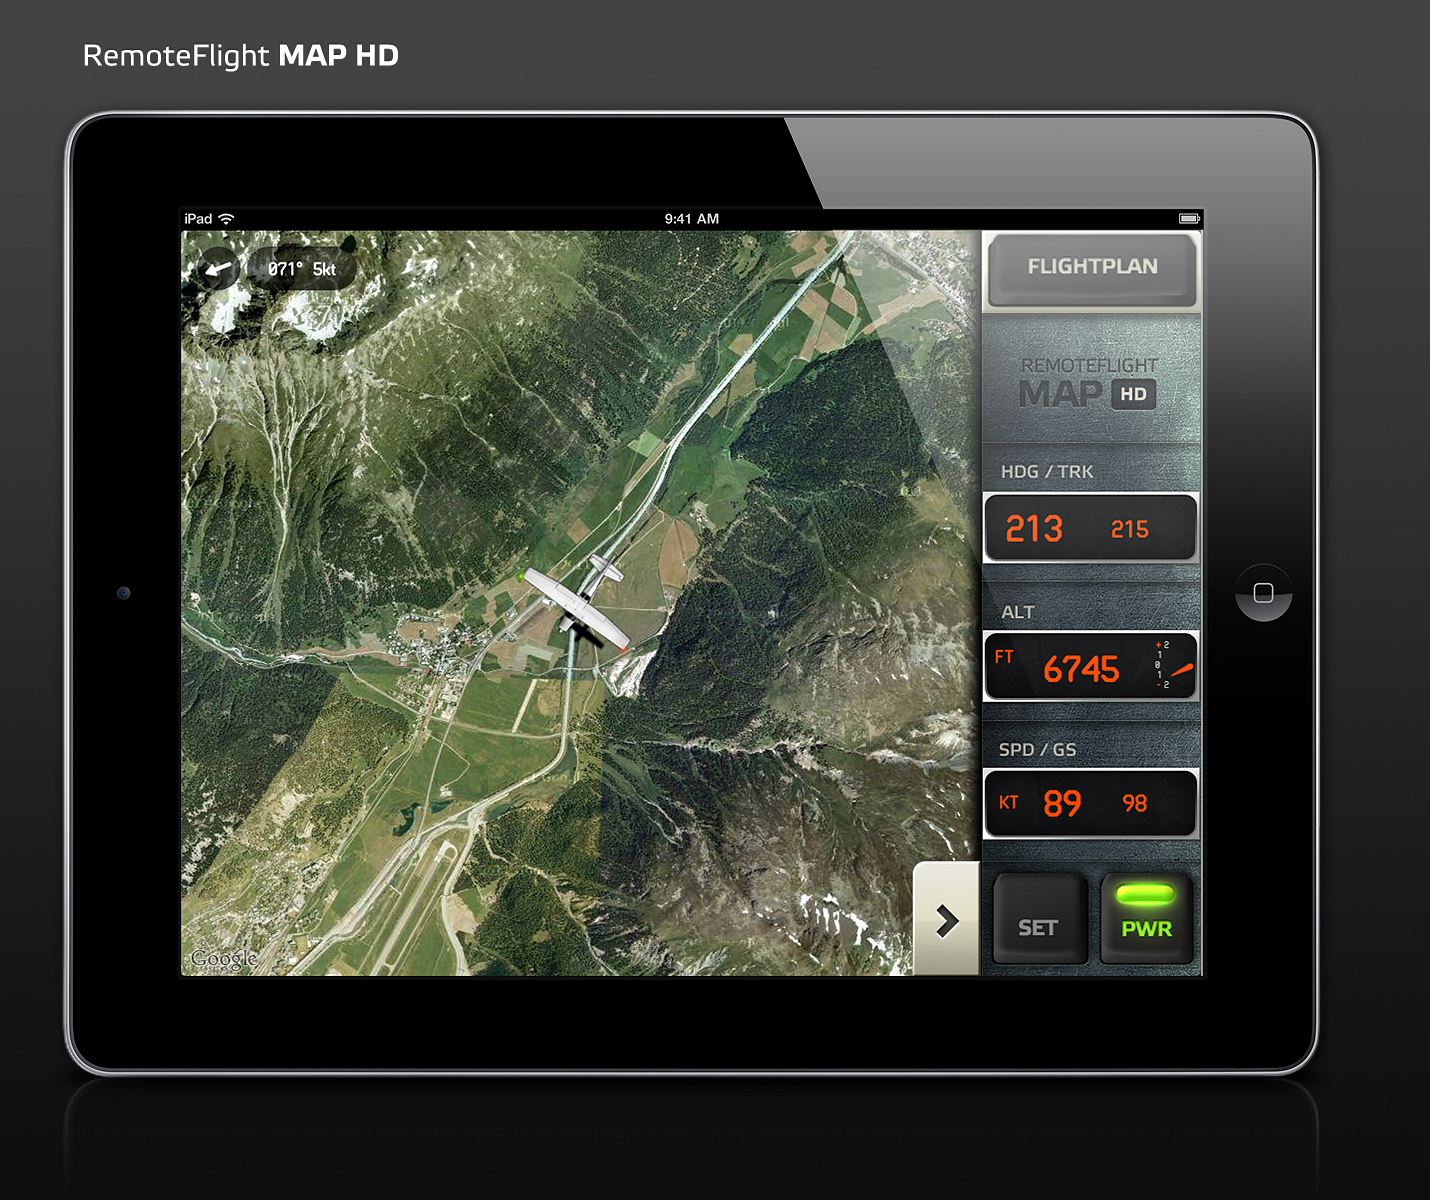 RemoteFlight   MAP HD for iPad View 100  resolutionProduct video